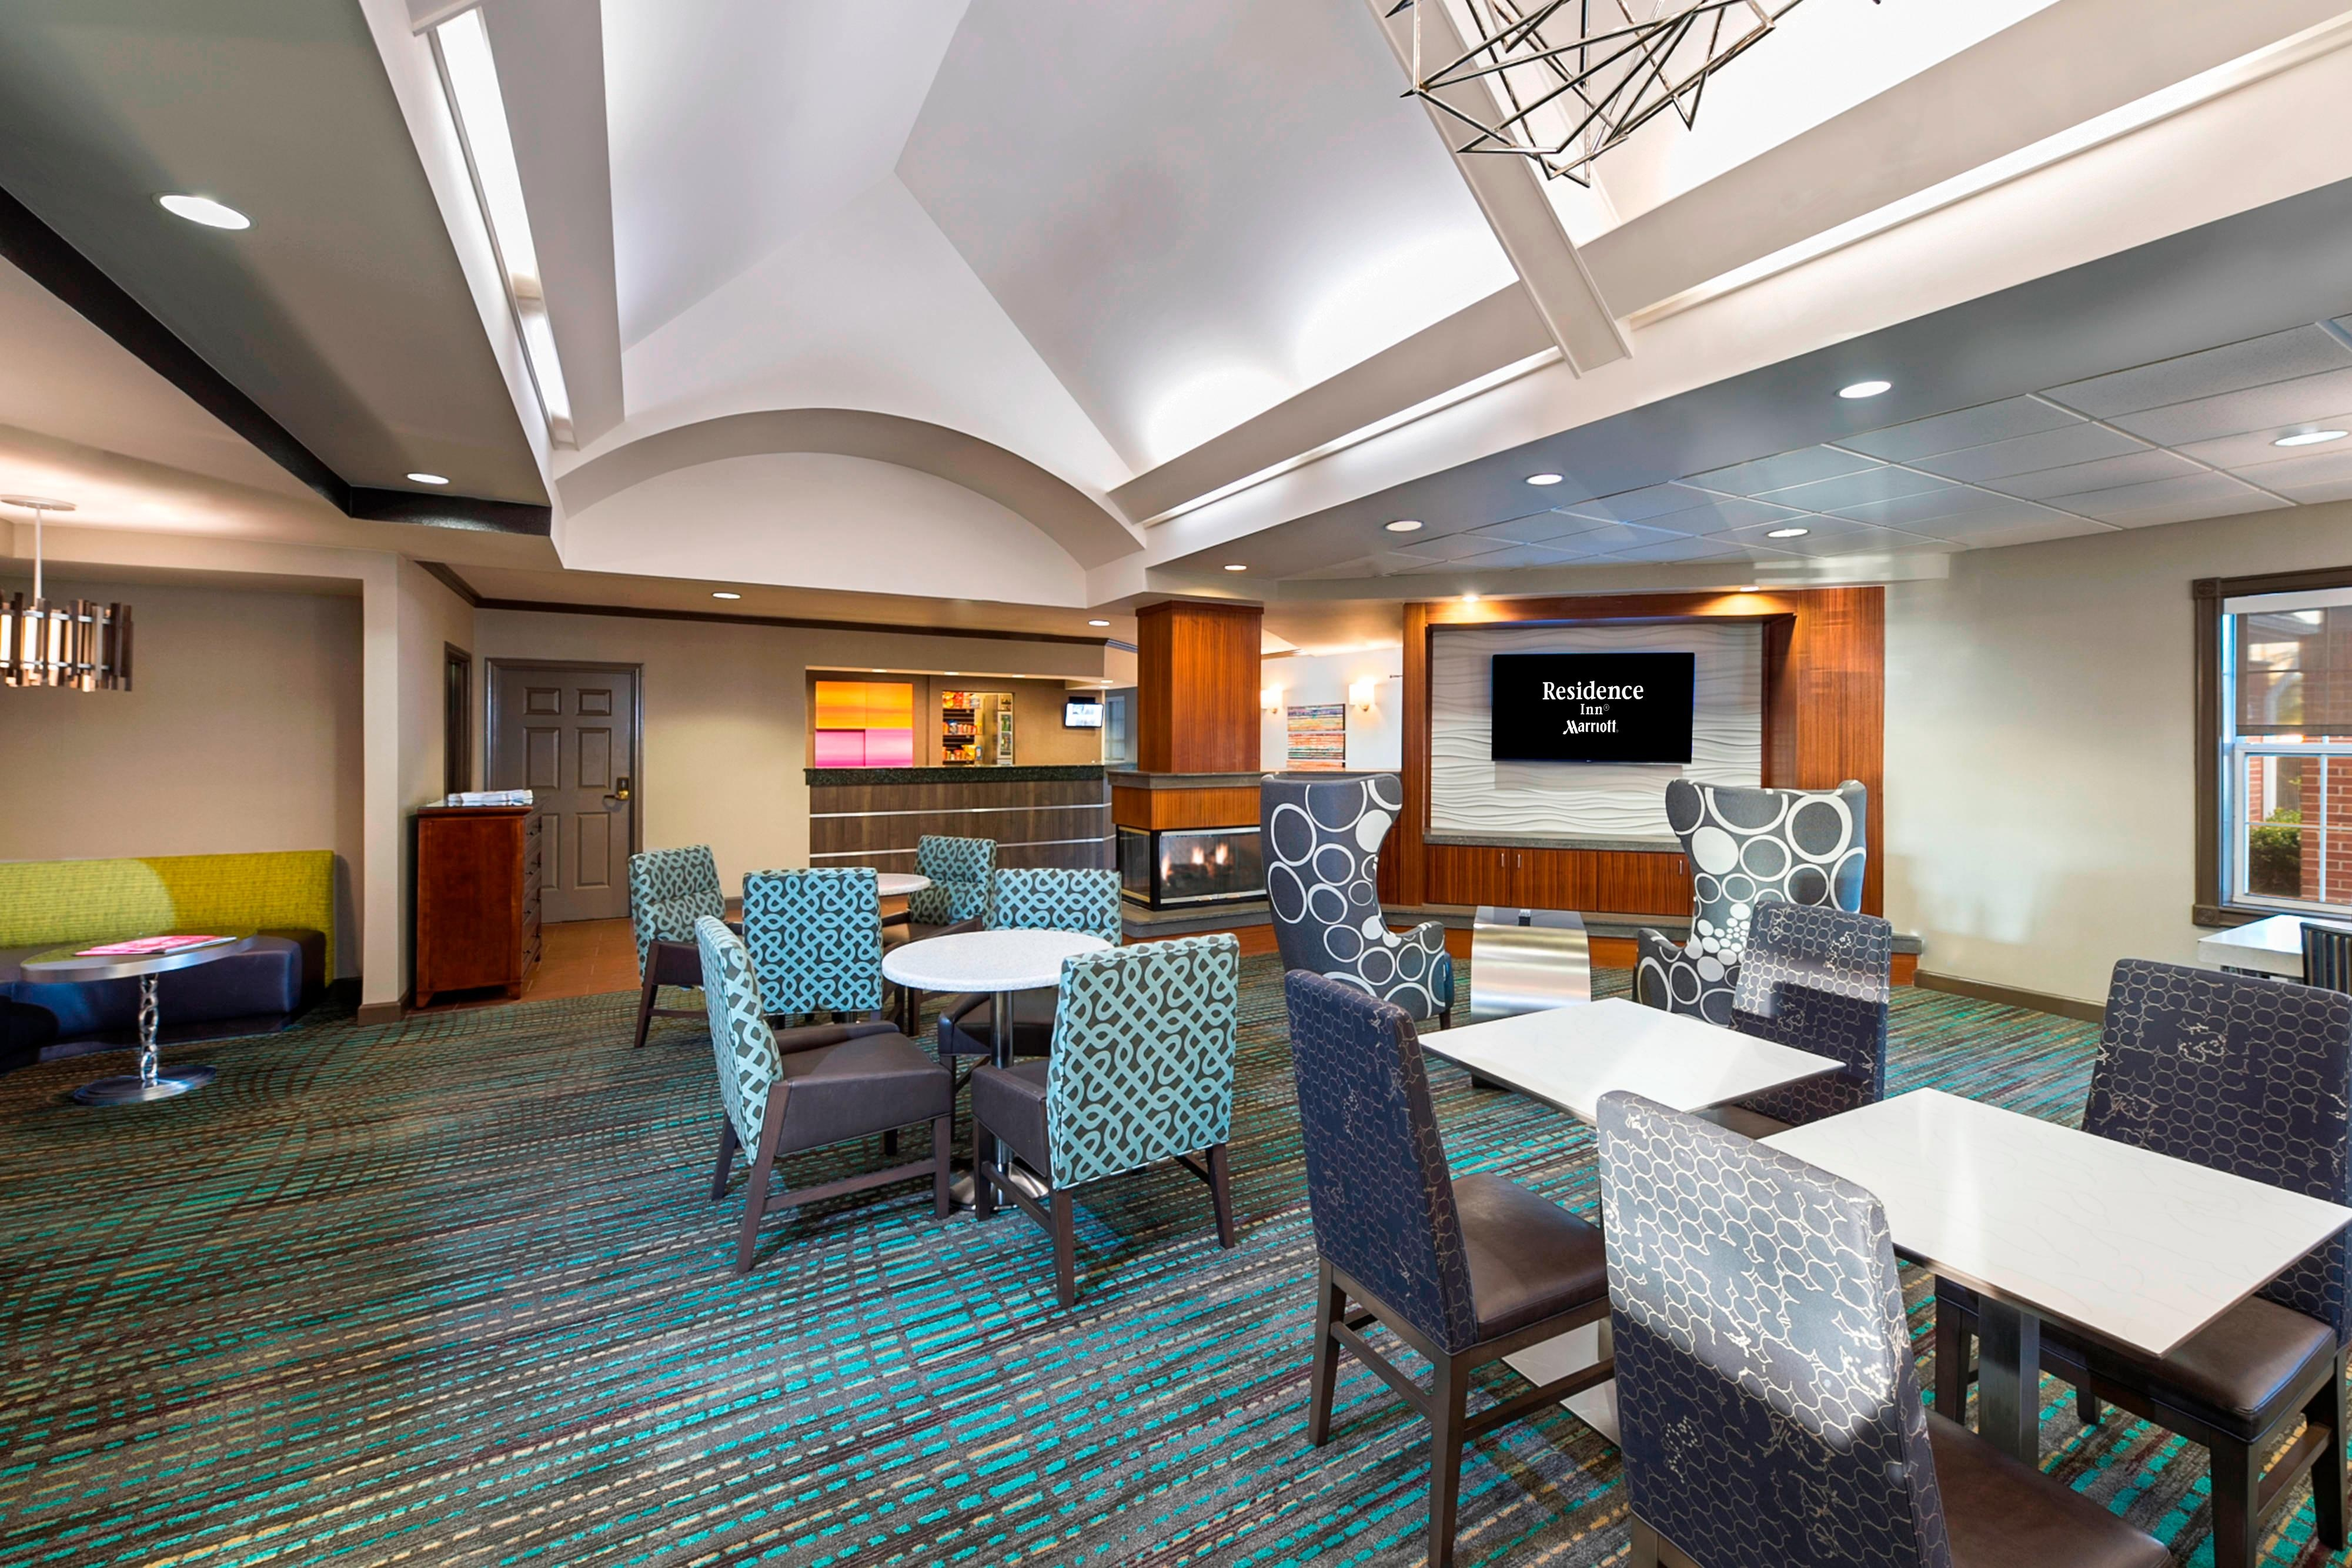 Residence Inn Lakeland conversation area